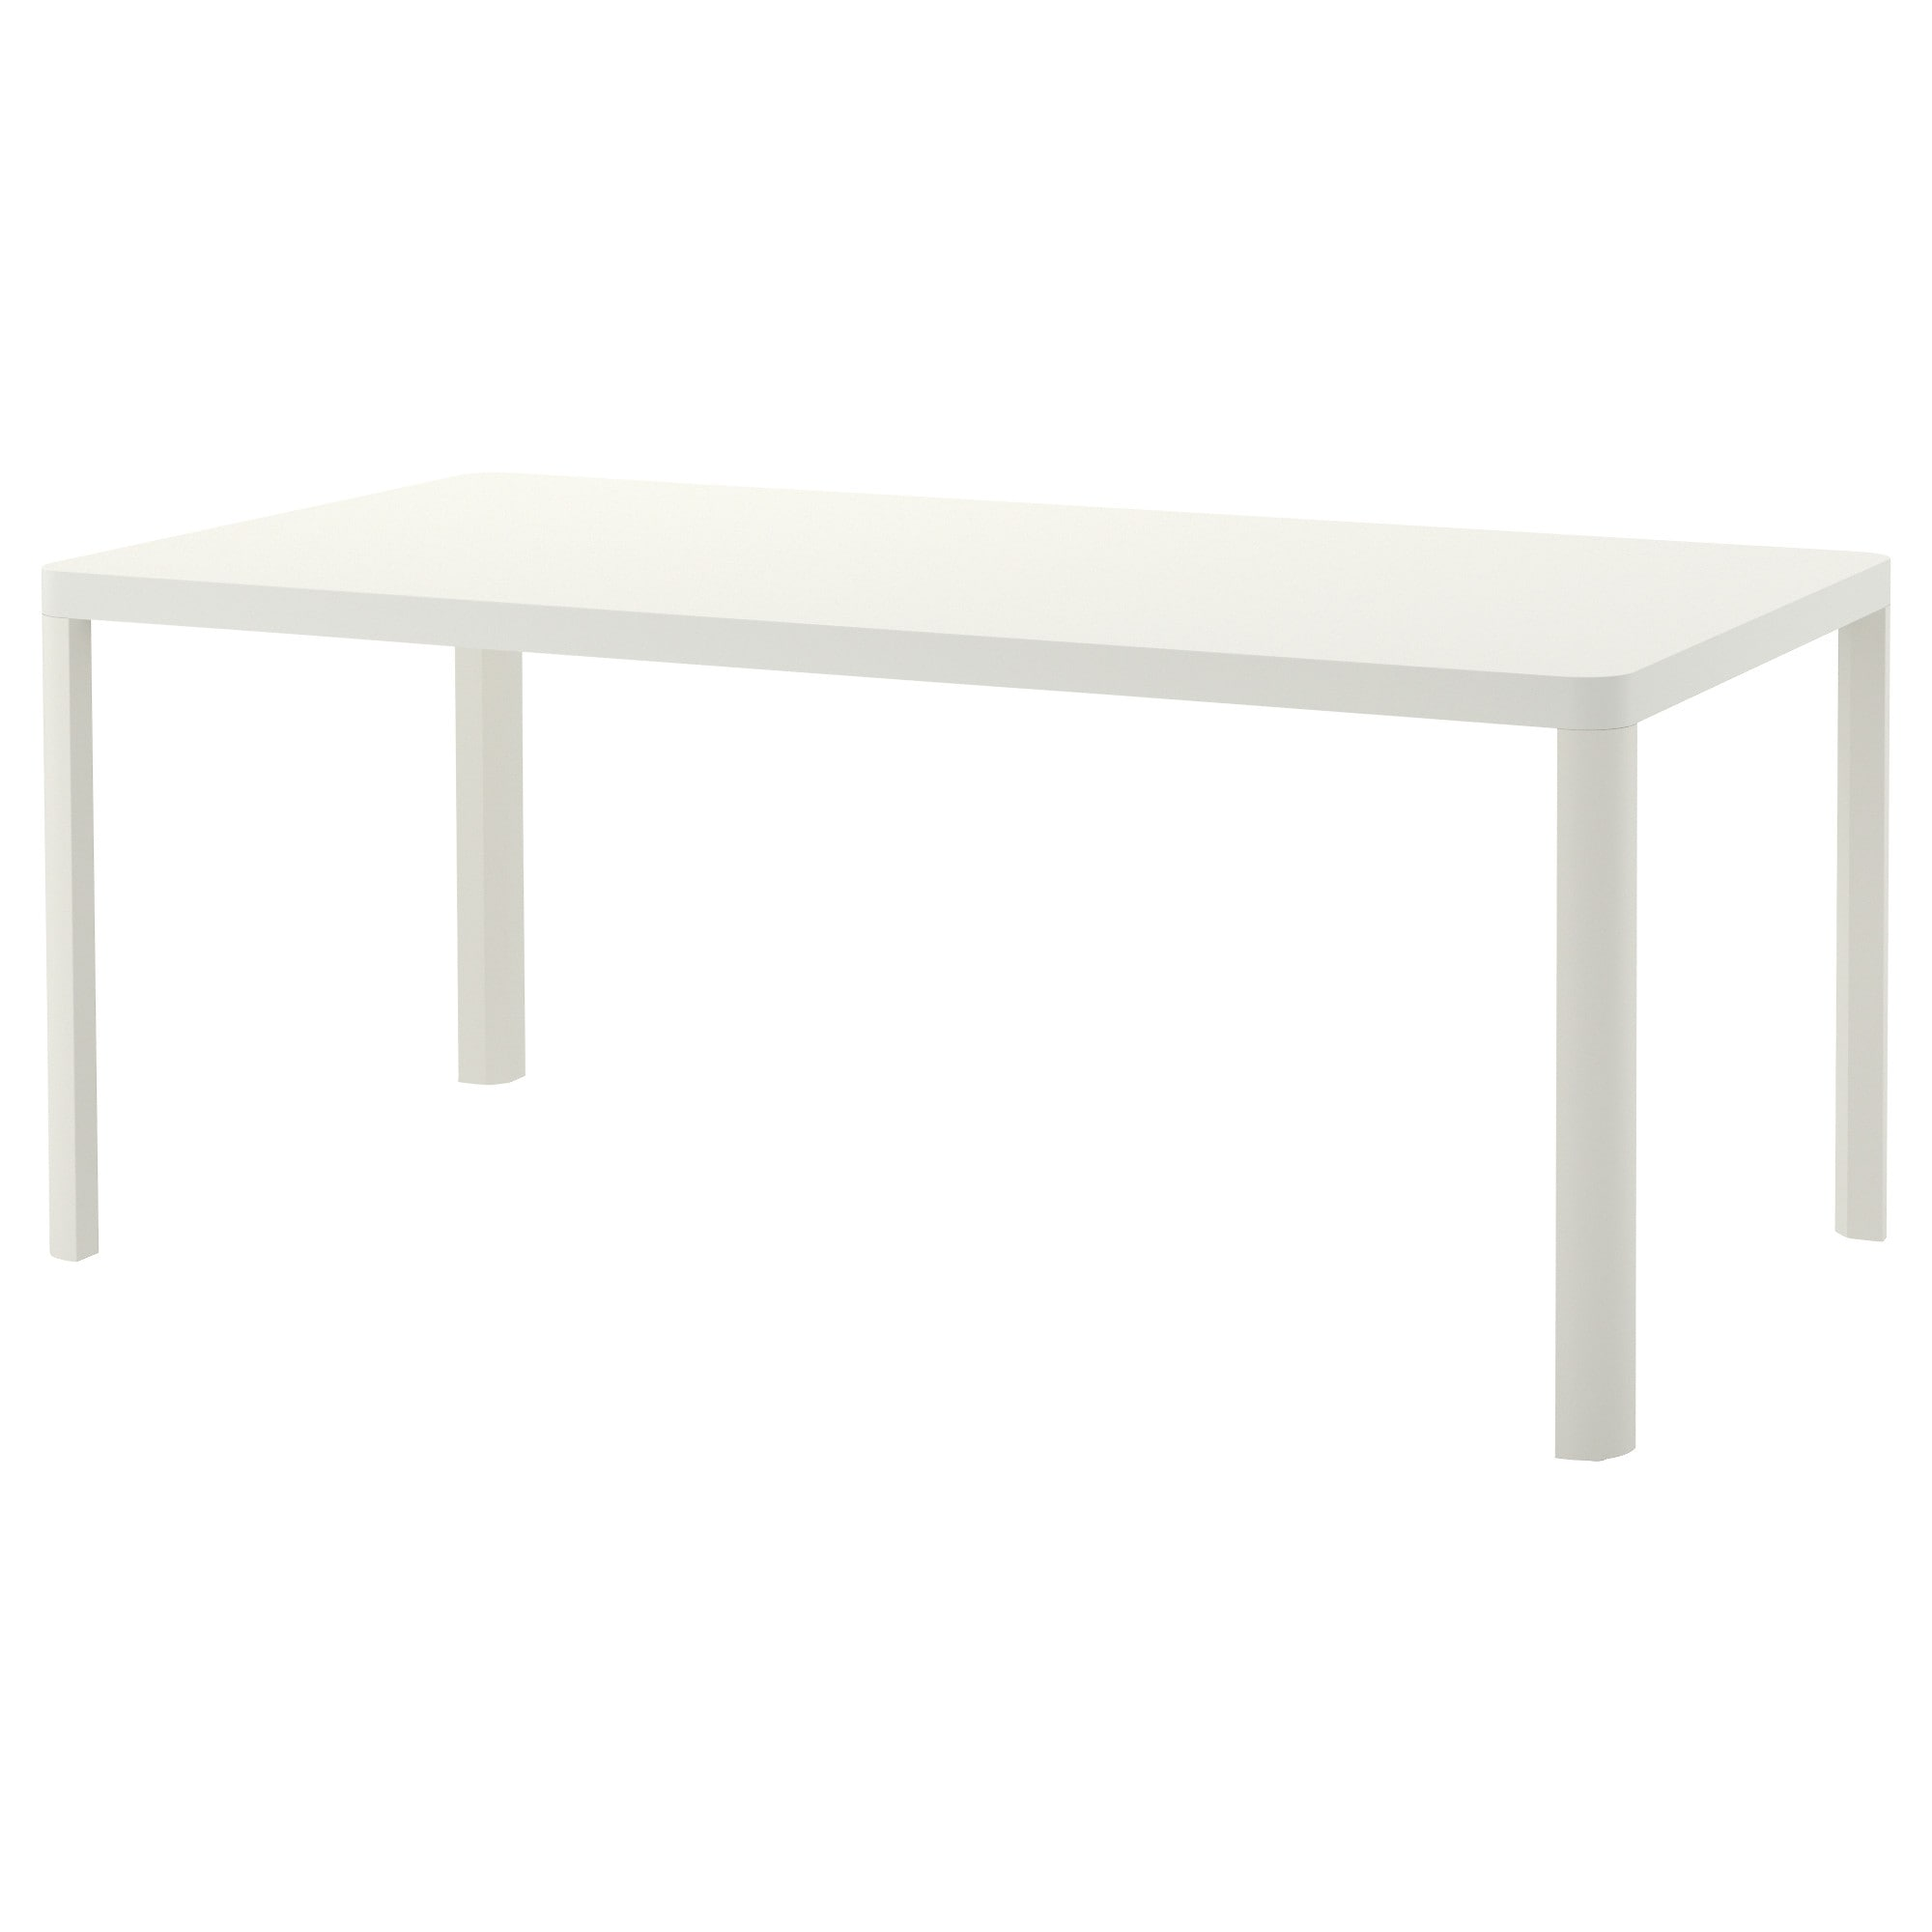 TINGBY Table - IKEA